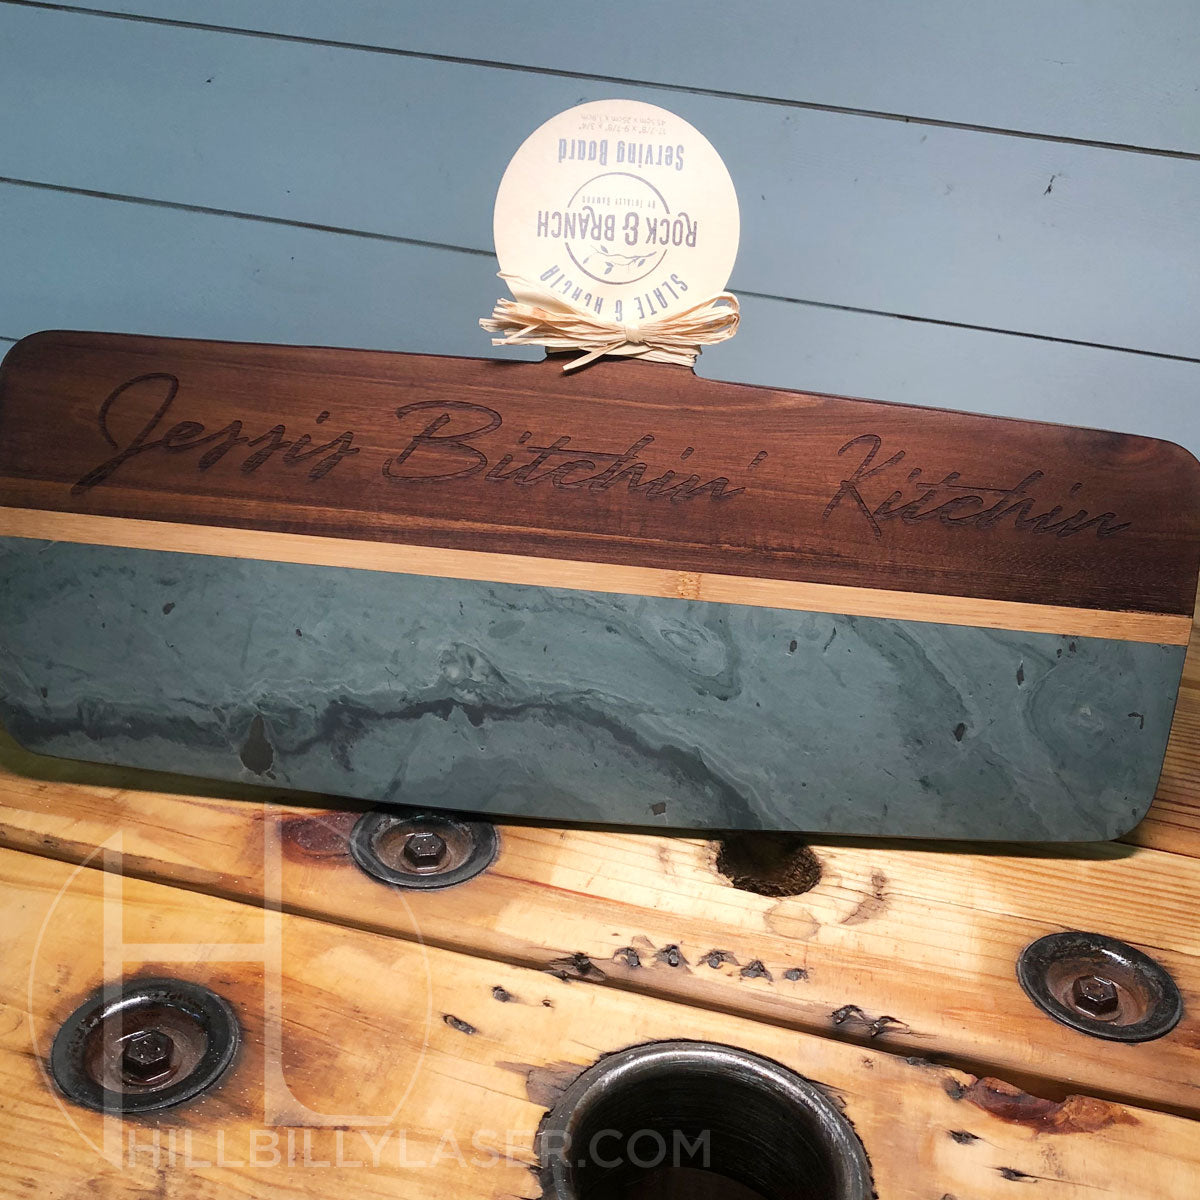 Slate & Acacia Serving Paddle - Hillbilly Laser